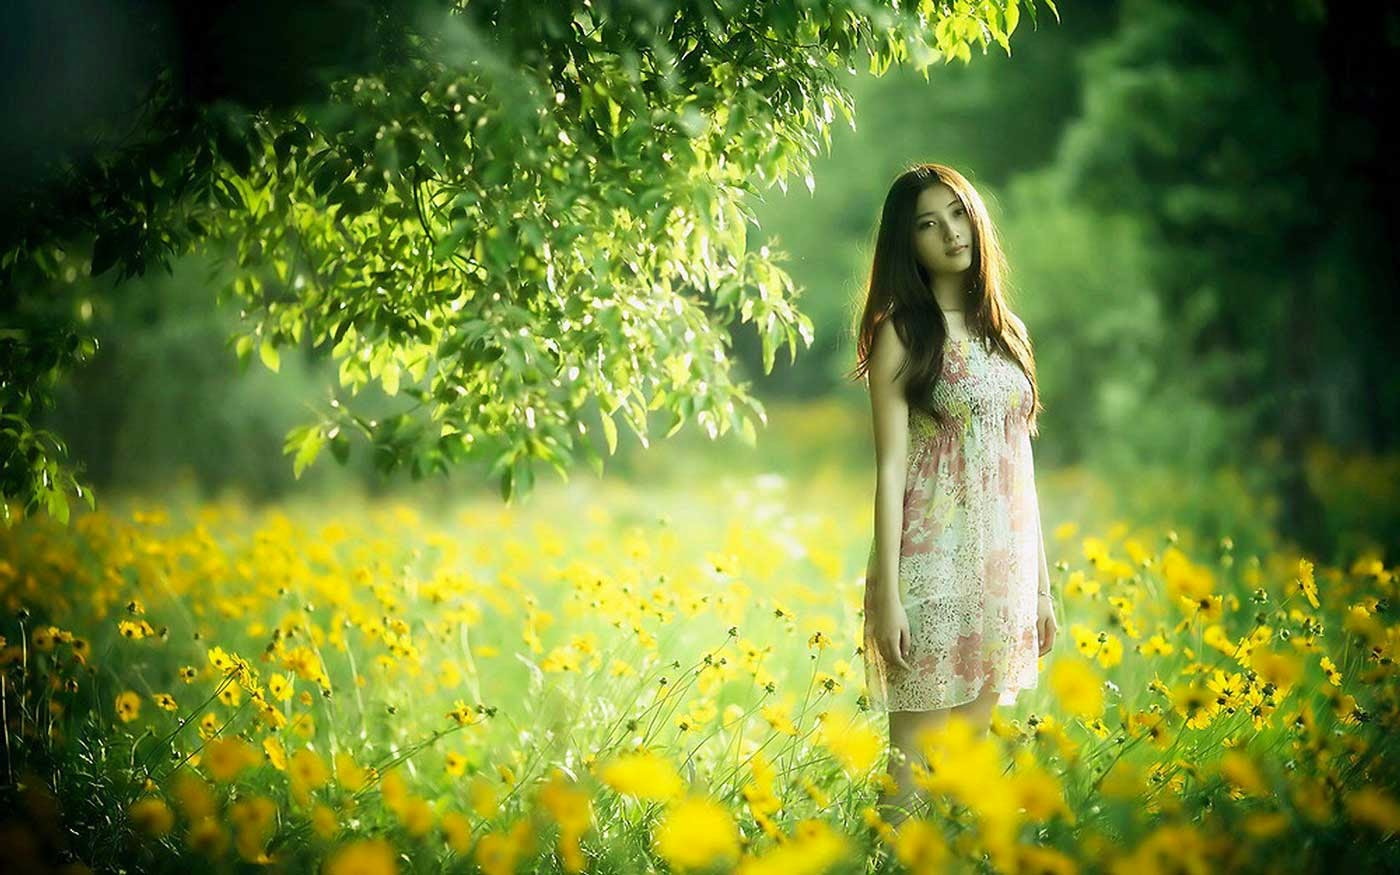 Cute Girl in Nature Photography